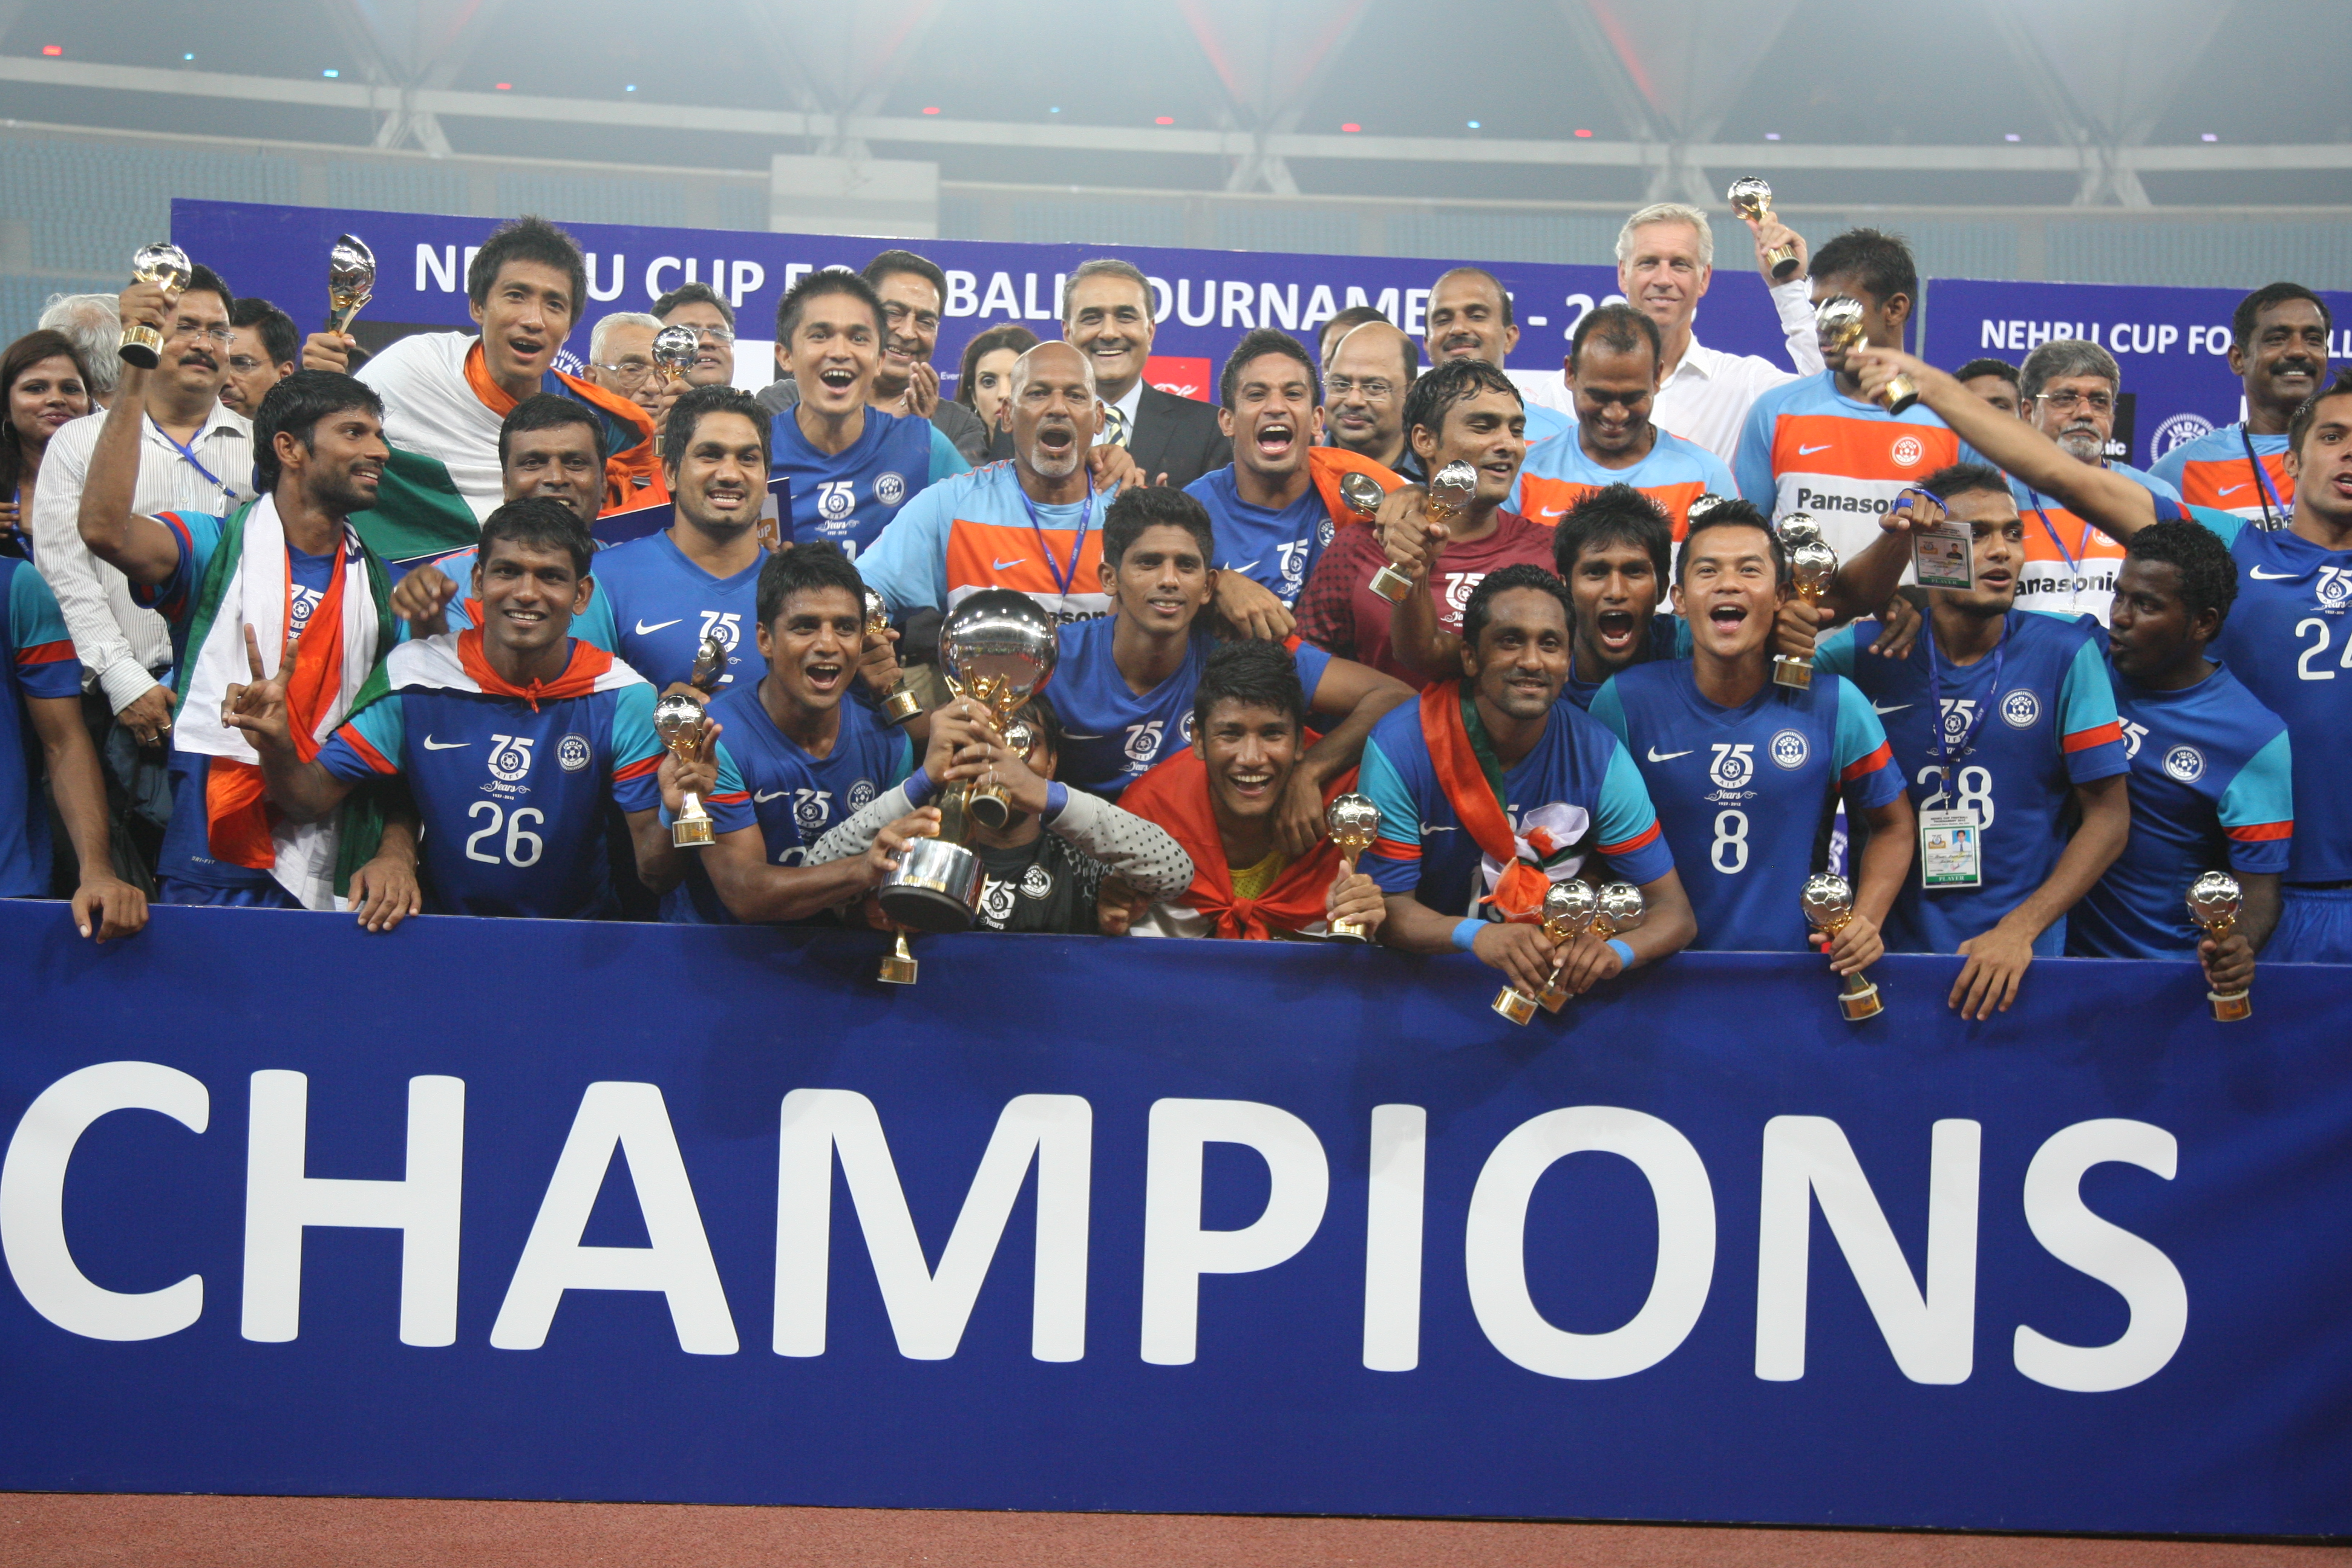 Nehru Cup: How did the Indians fare?